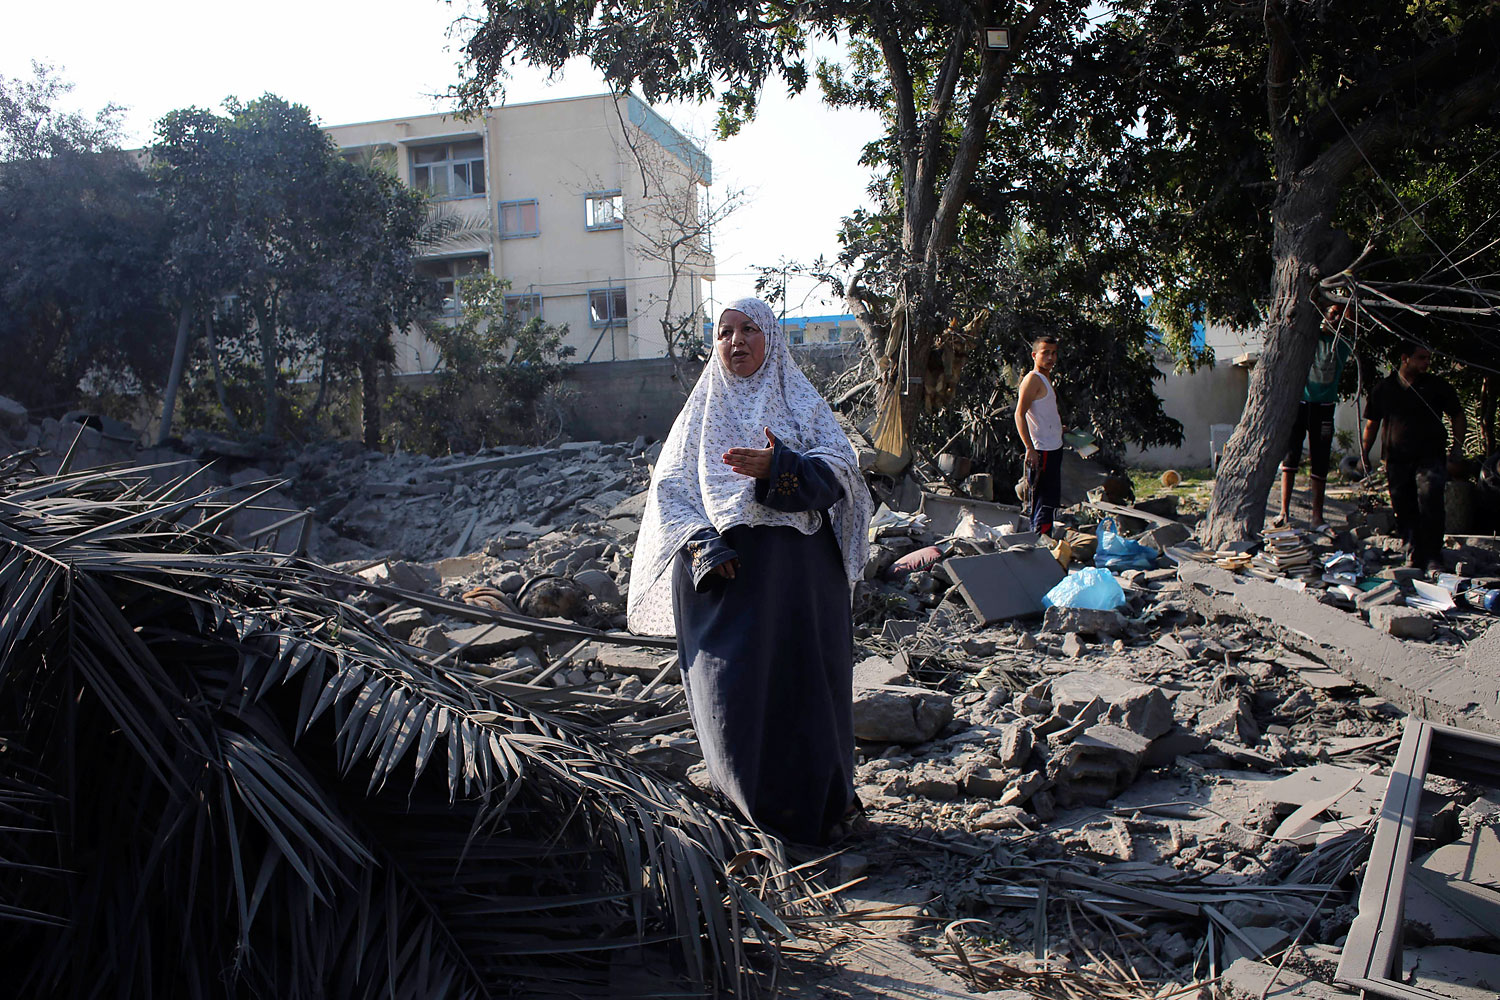 A Palestinian woman gestures as she stands amidst the rubble of her house which police said was destroyed in an Israeli air strike in Rafah in the southern Gaza Strip, July 20, 2014.